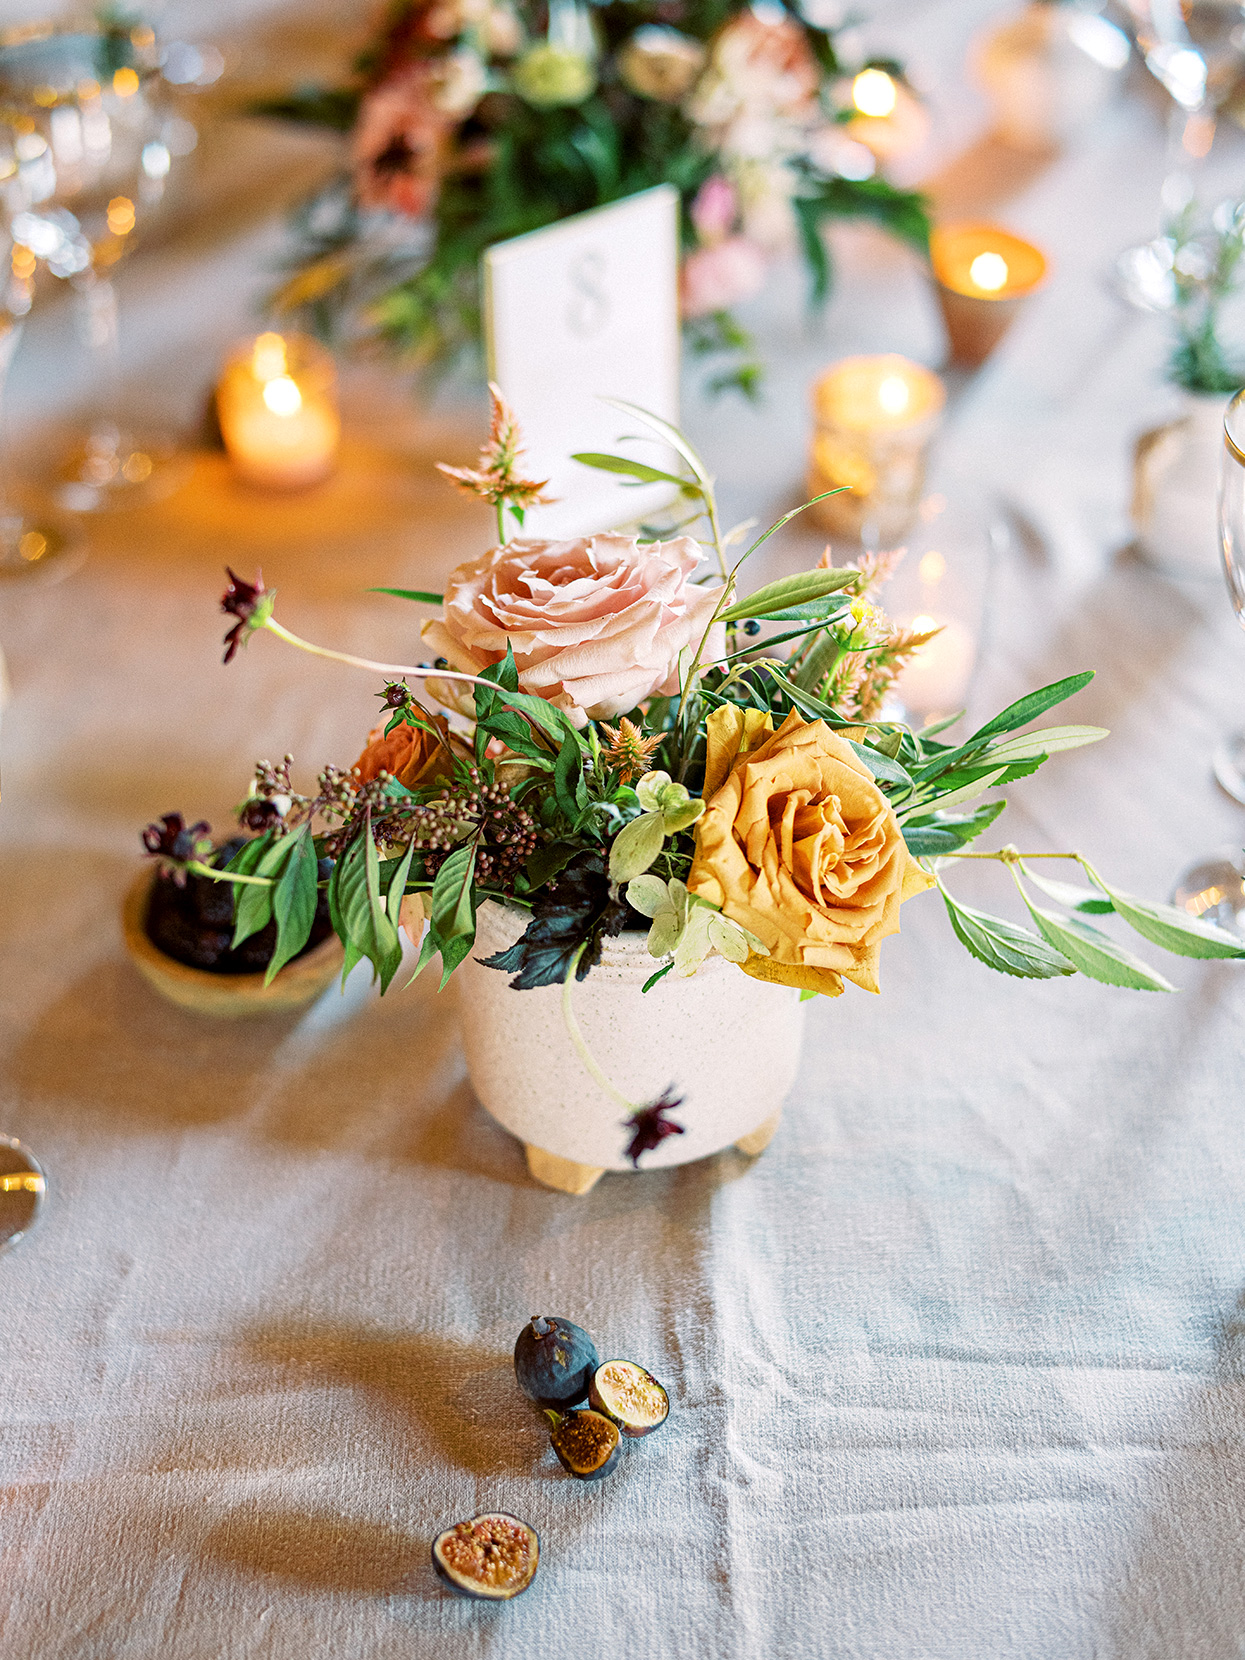 Claire and Dan small romantic centerpieces on table